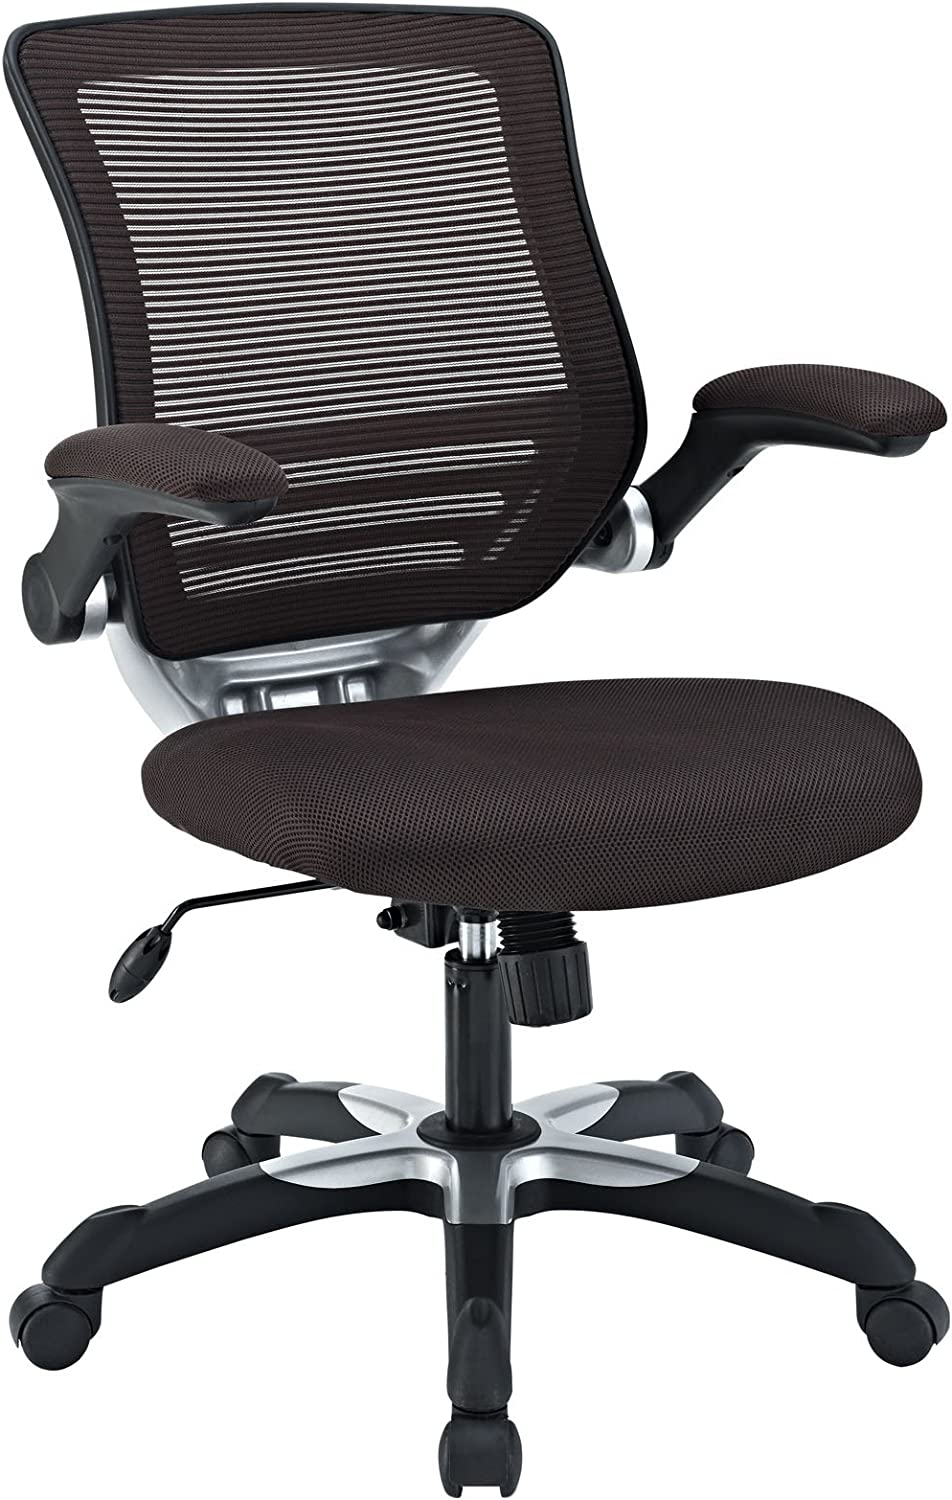 Modway Edge Mesh Back and Mesh Seat Office Chair In Black With Flip-Up Arms in Brown